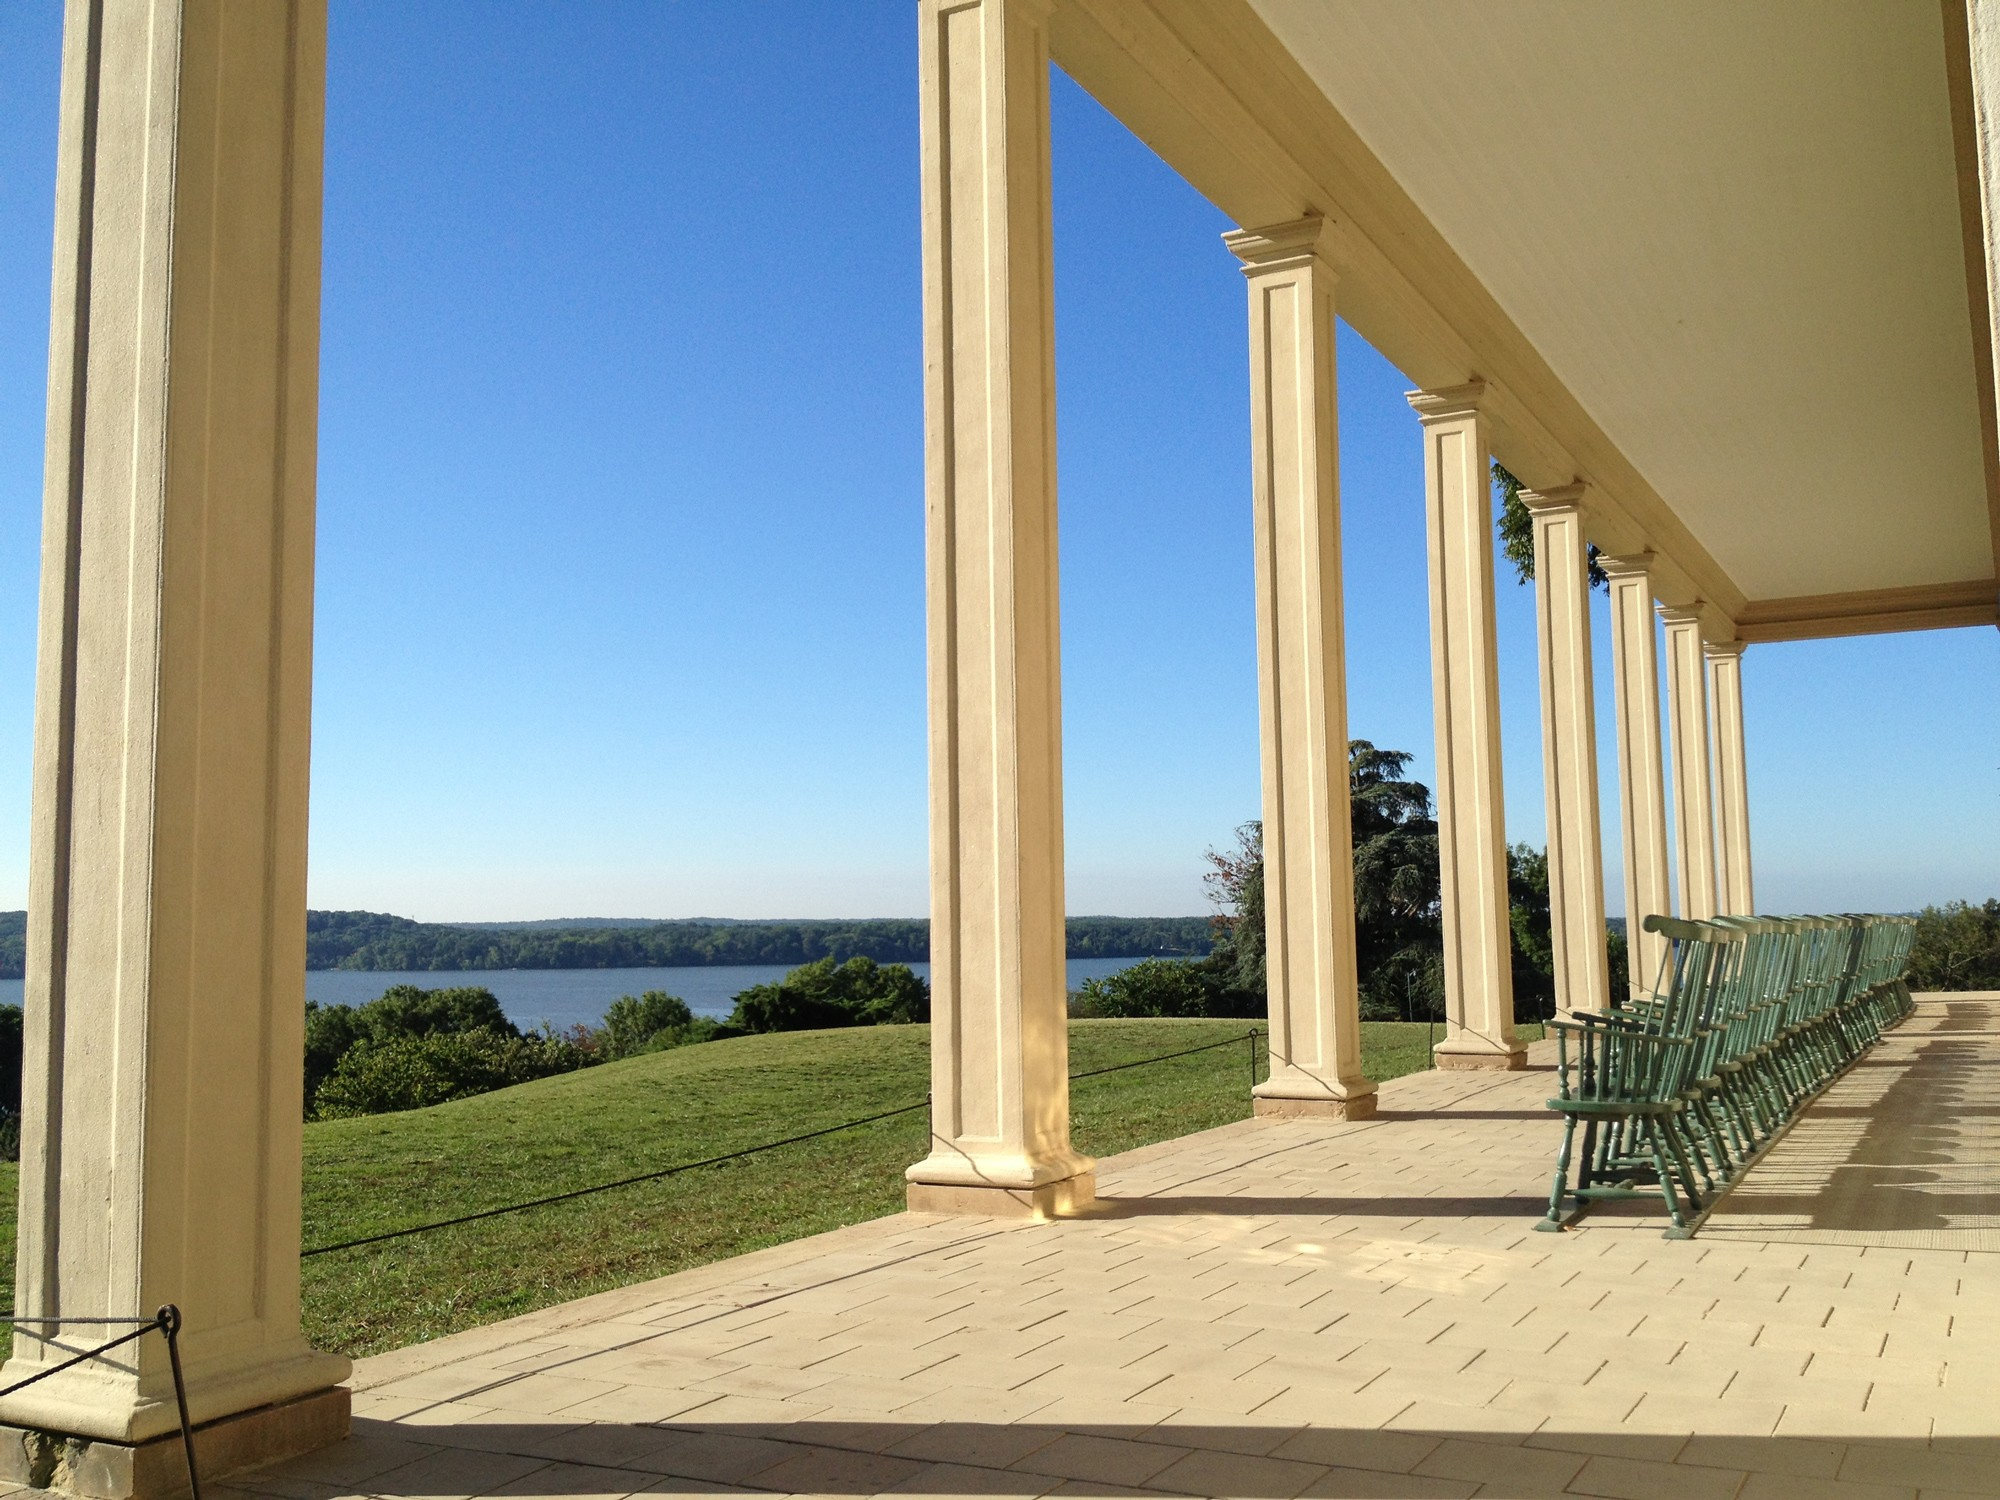 Room by room george washingtons mount vernon washington paves the piazza with stone pavers malvernweather Gallery